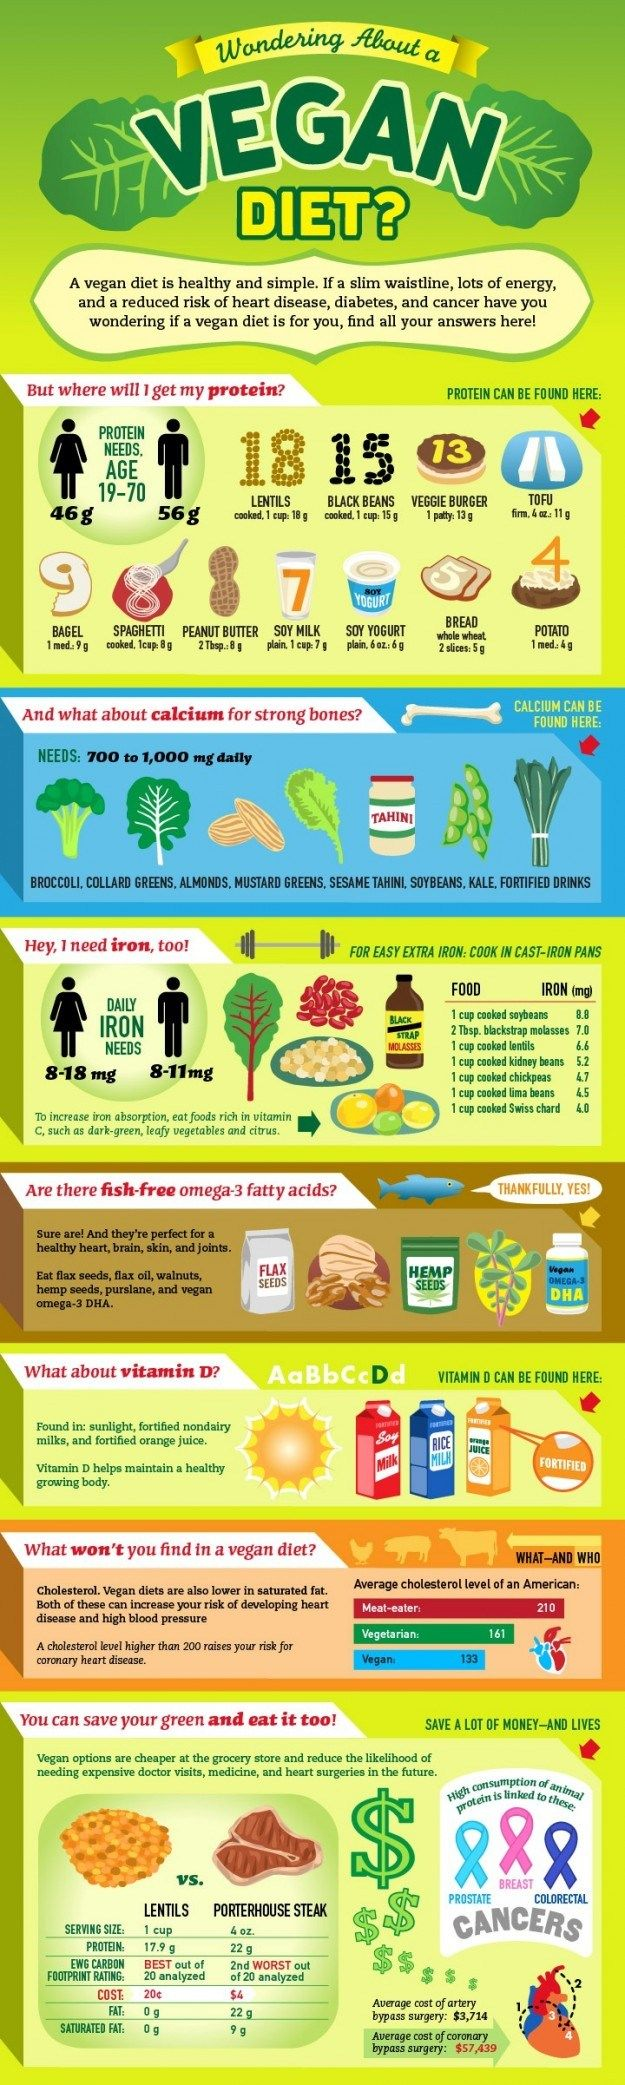 Regarding Vitamin D- Cultivated Mushrooms can provide up to 100% of your DV in one serving! This poster is great but only scratches the surface on vegan health!